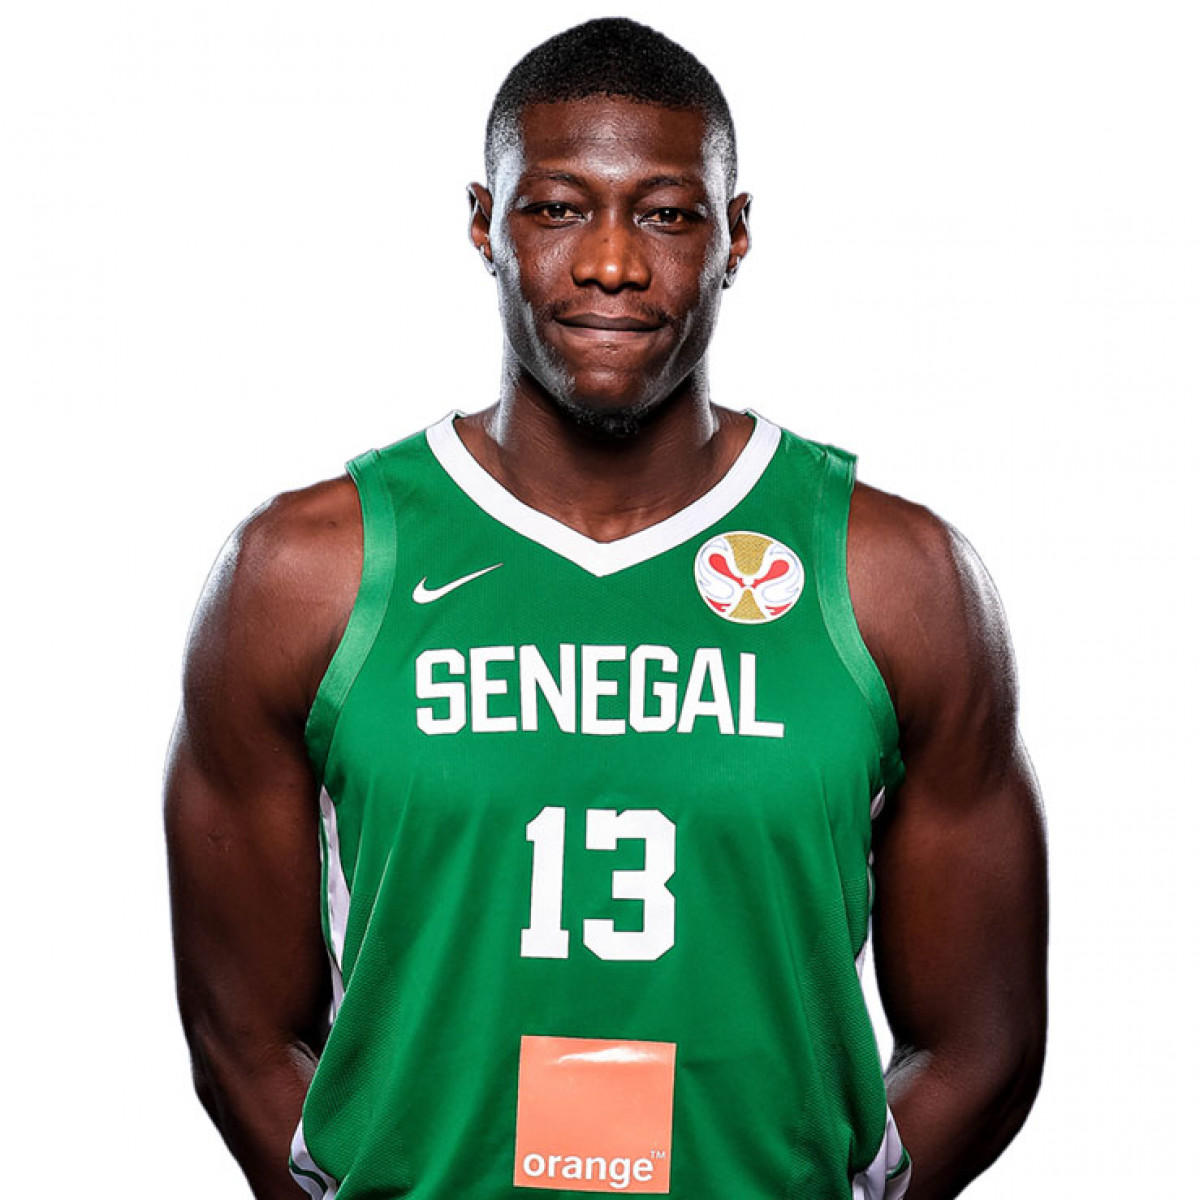 Photo of Hamady N'diaye, 2019-2020 season